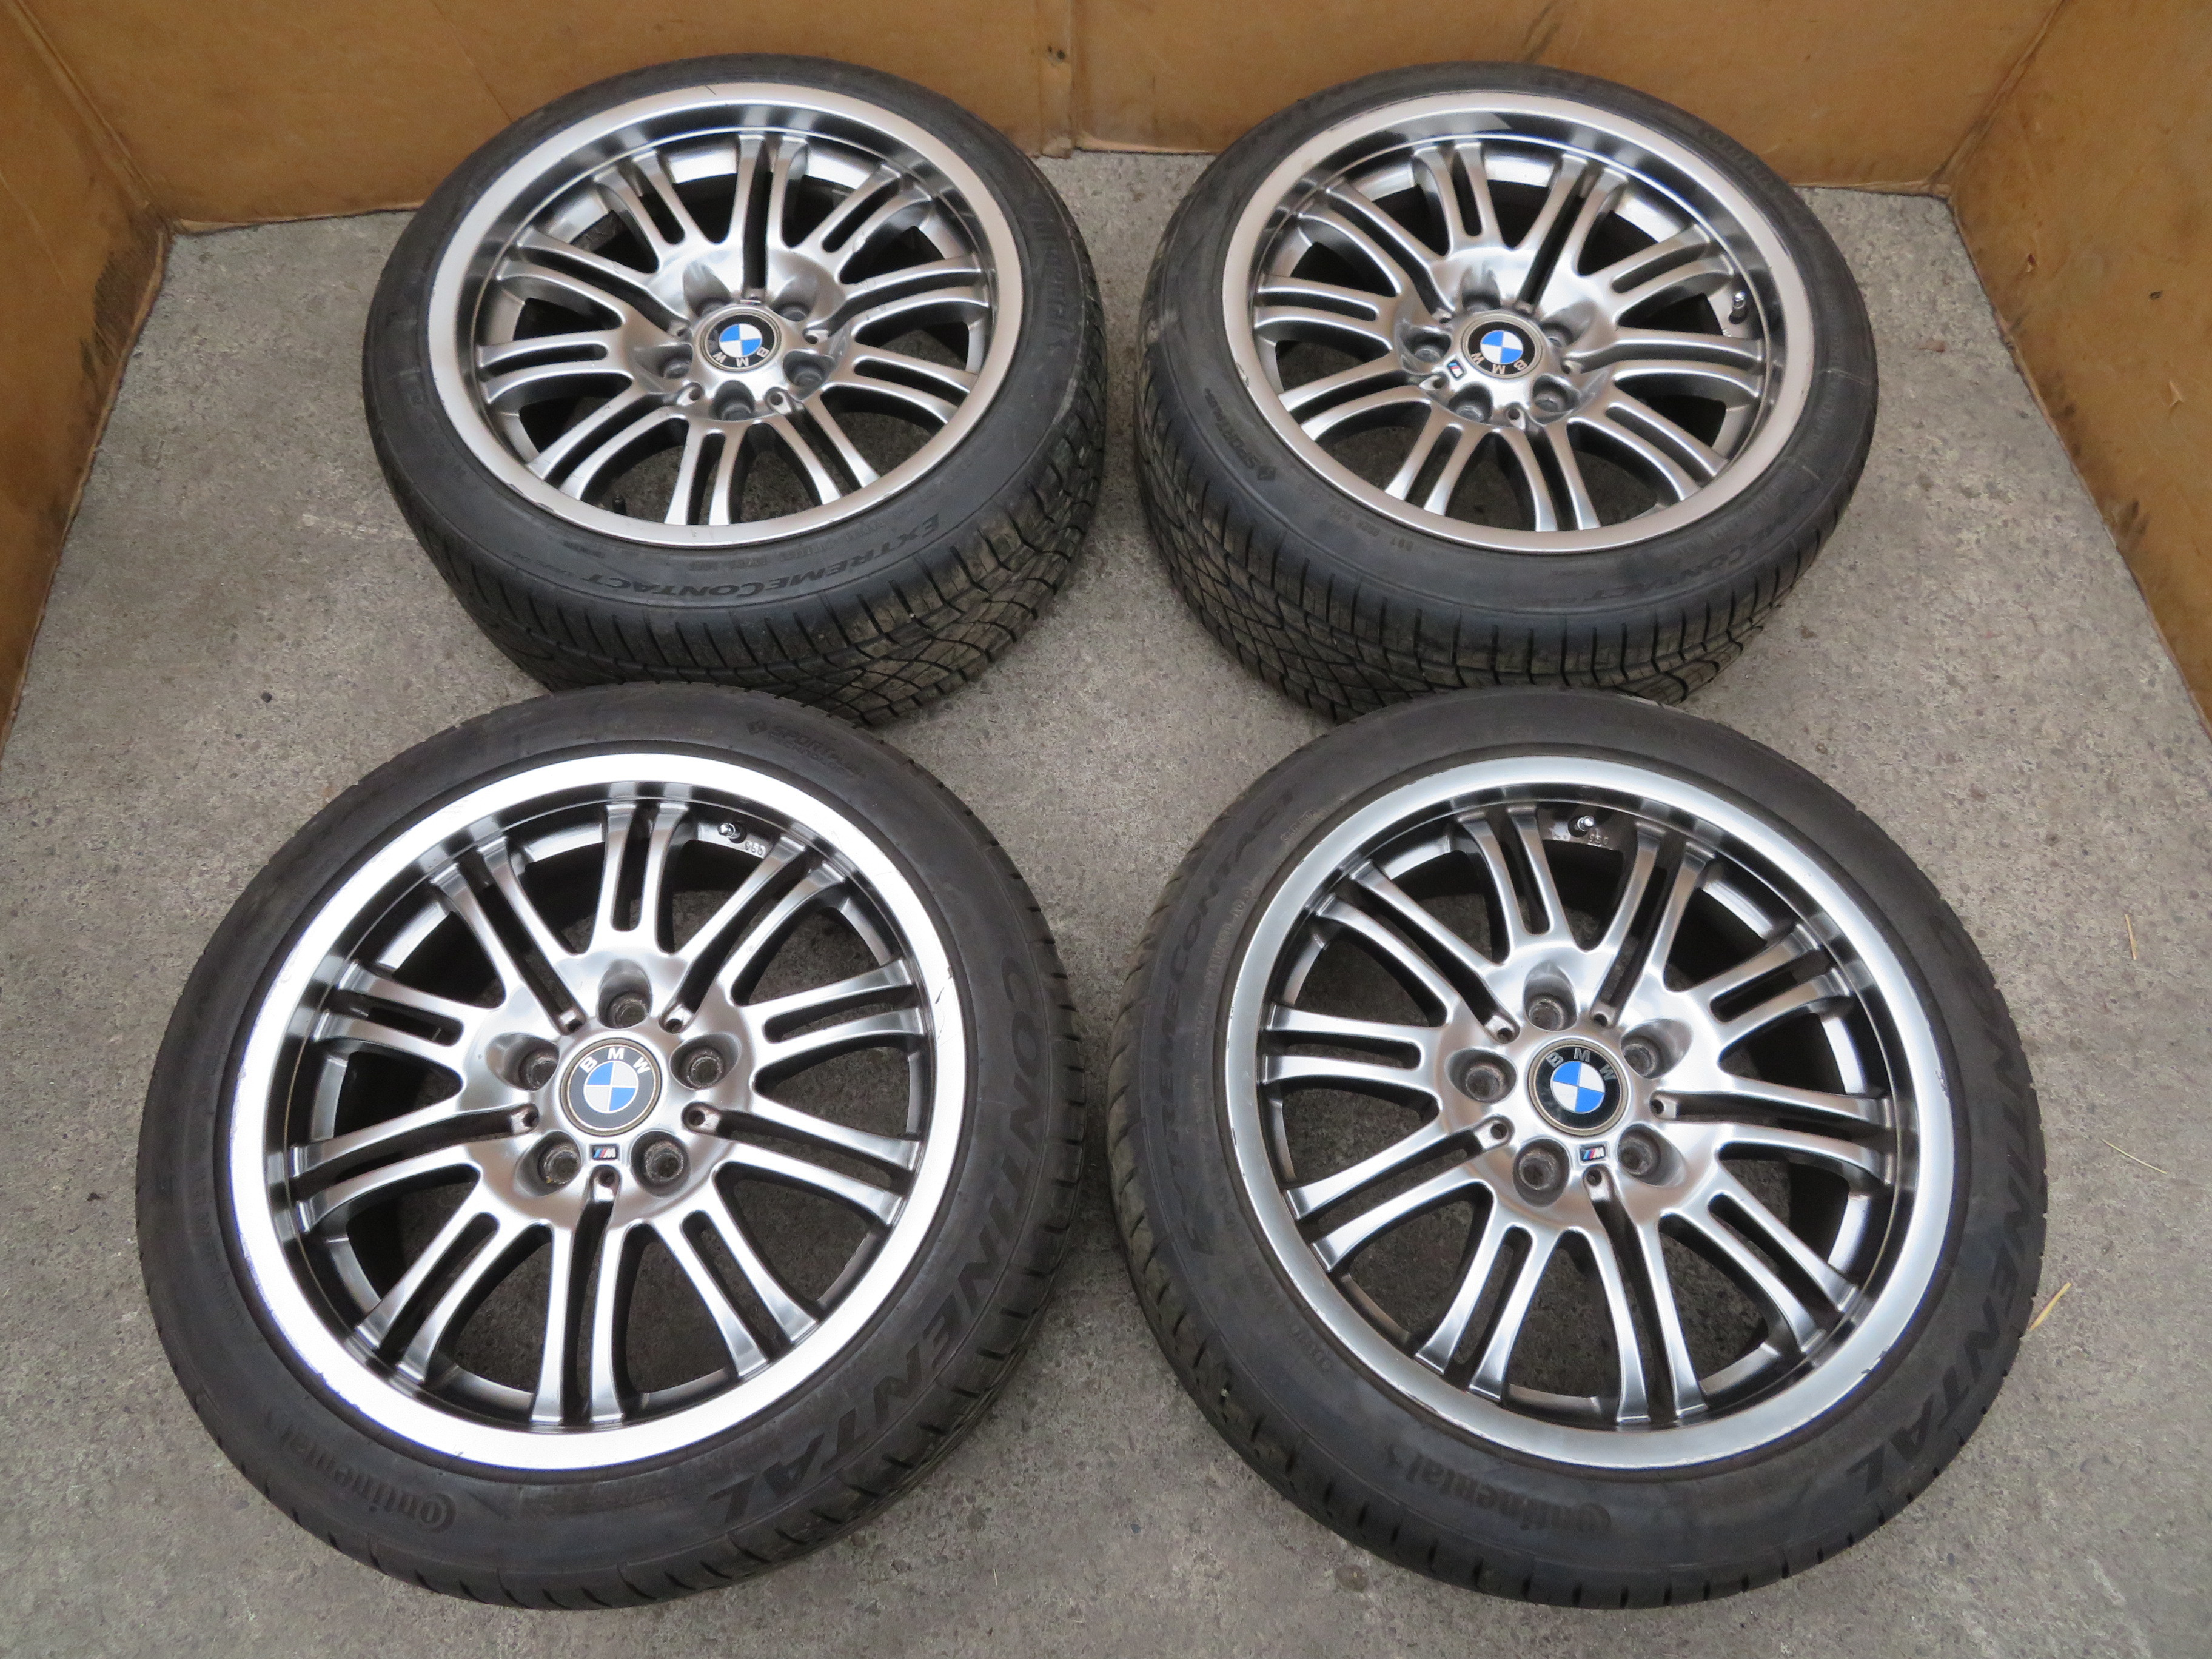 01 06 Bmw M3 E46 1071 Oem 18 Staggered Wheels Tires Style 67 Pk Auto Parts Inc